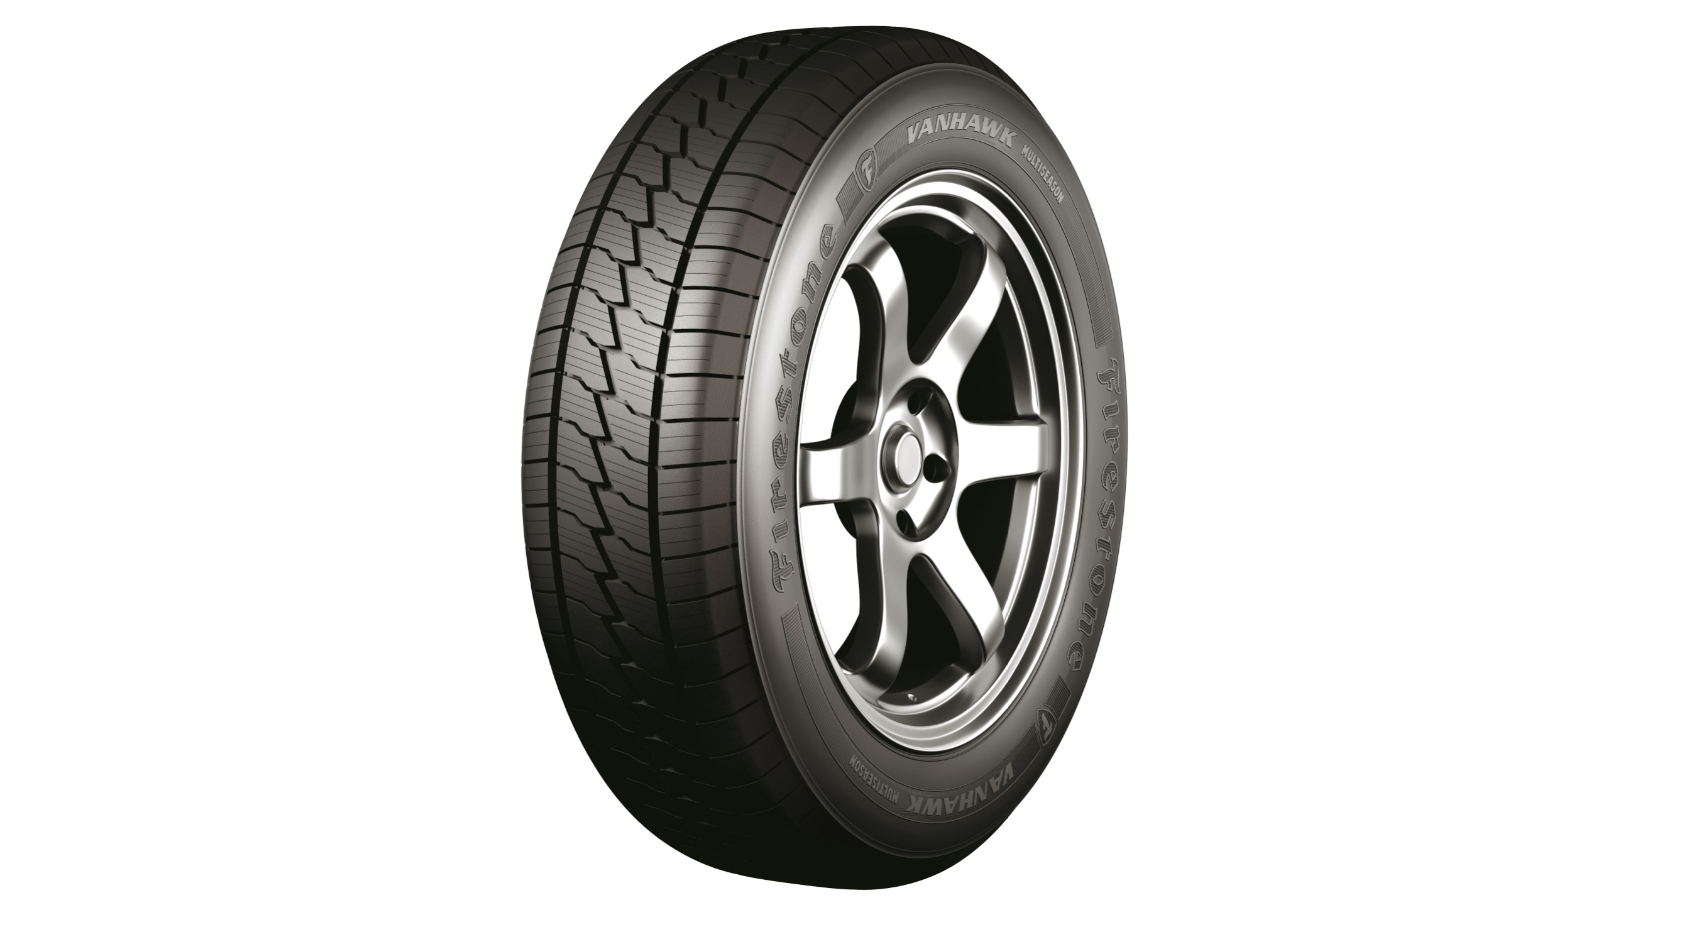 Neuer Firestone Vanhawk Multiseason